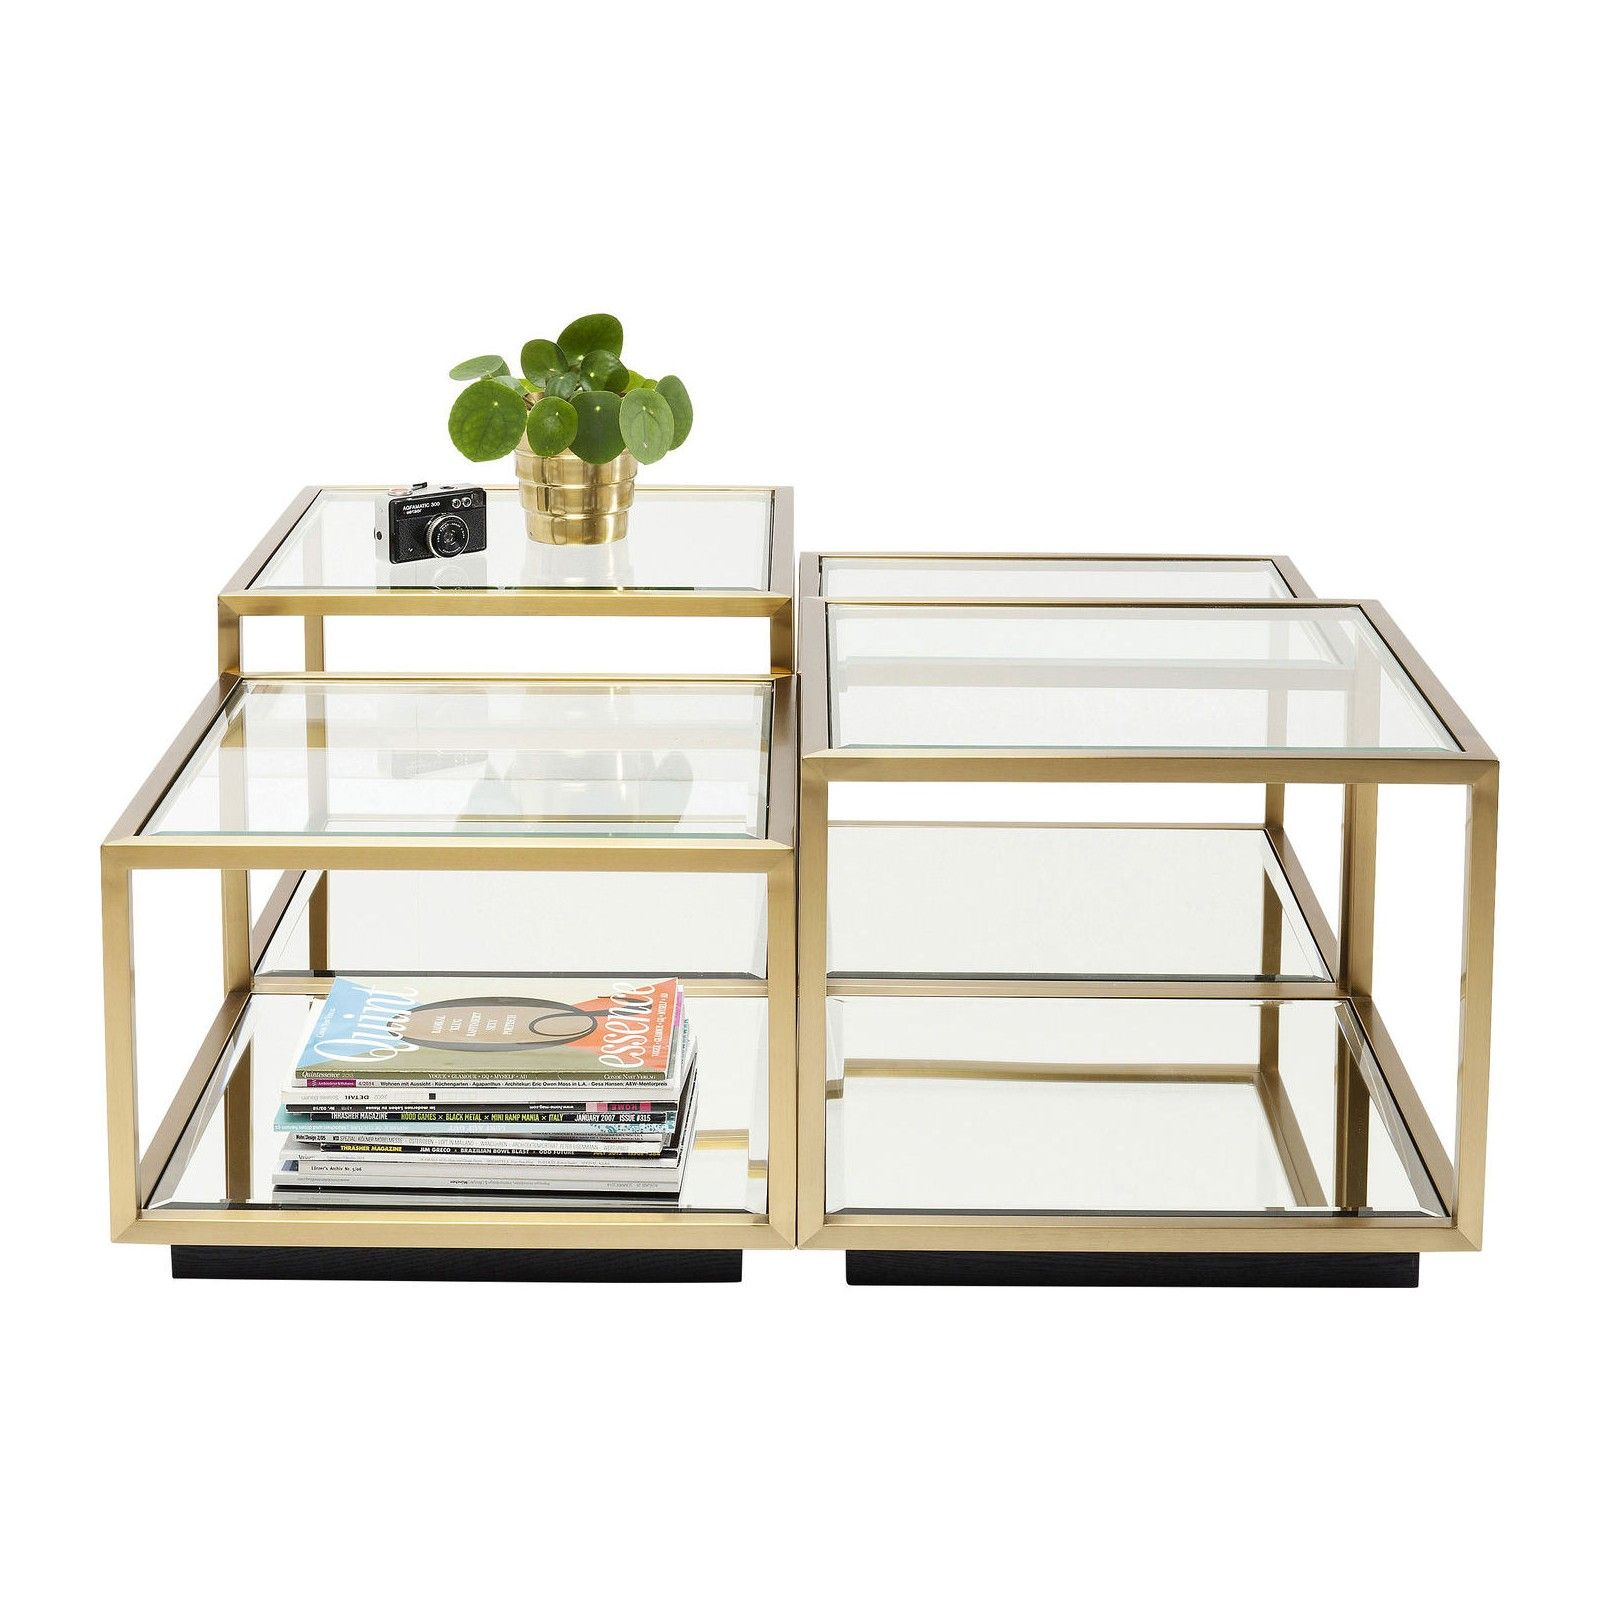 Tables Basses Luigi Set De 4 Kare Design Table Basse Table Basse Moderne Kare Design